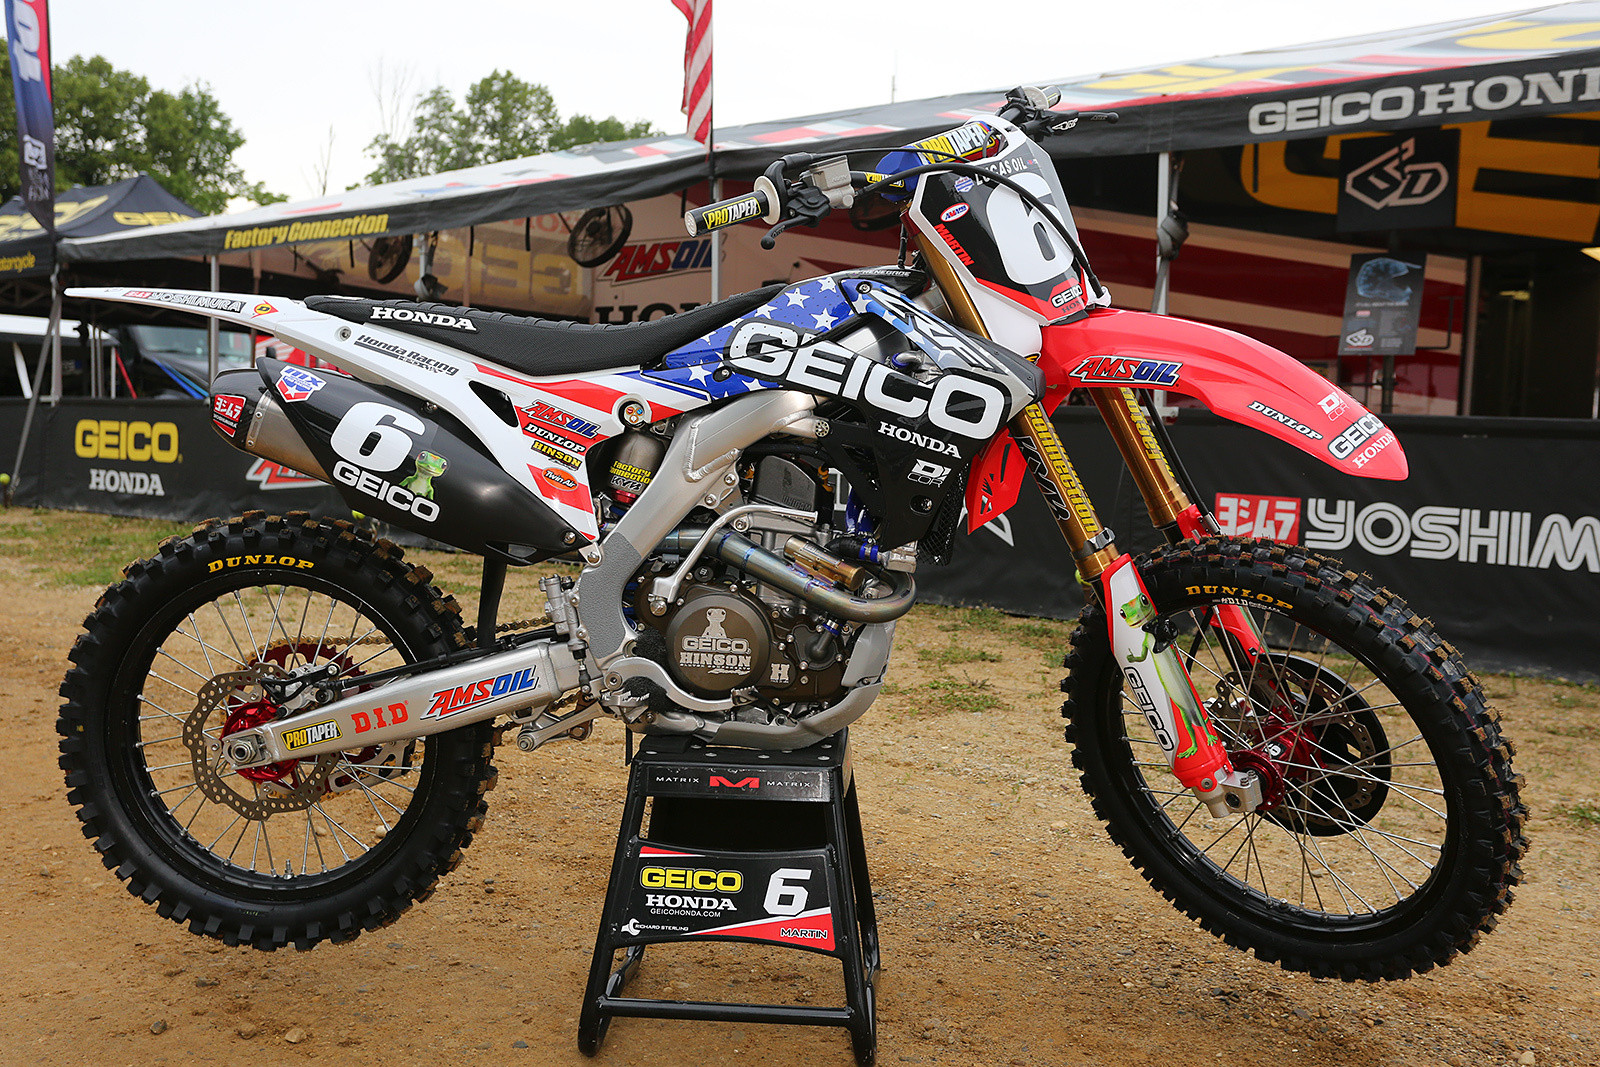 Normally the GEICO Honda bikes feature a yellow logo...we kind of like the white.